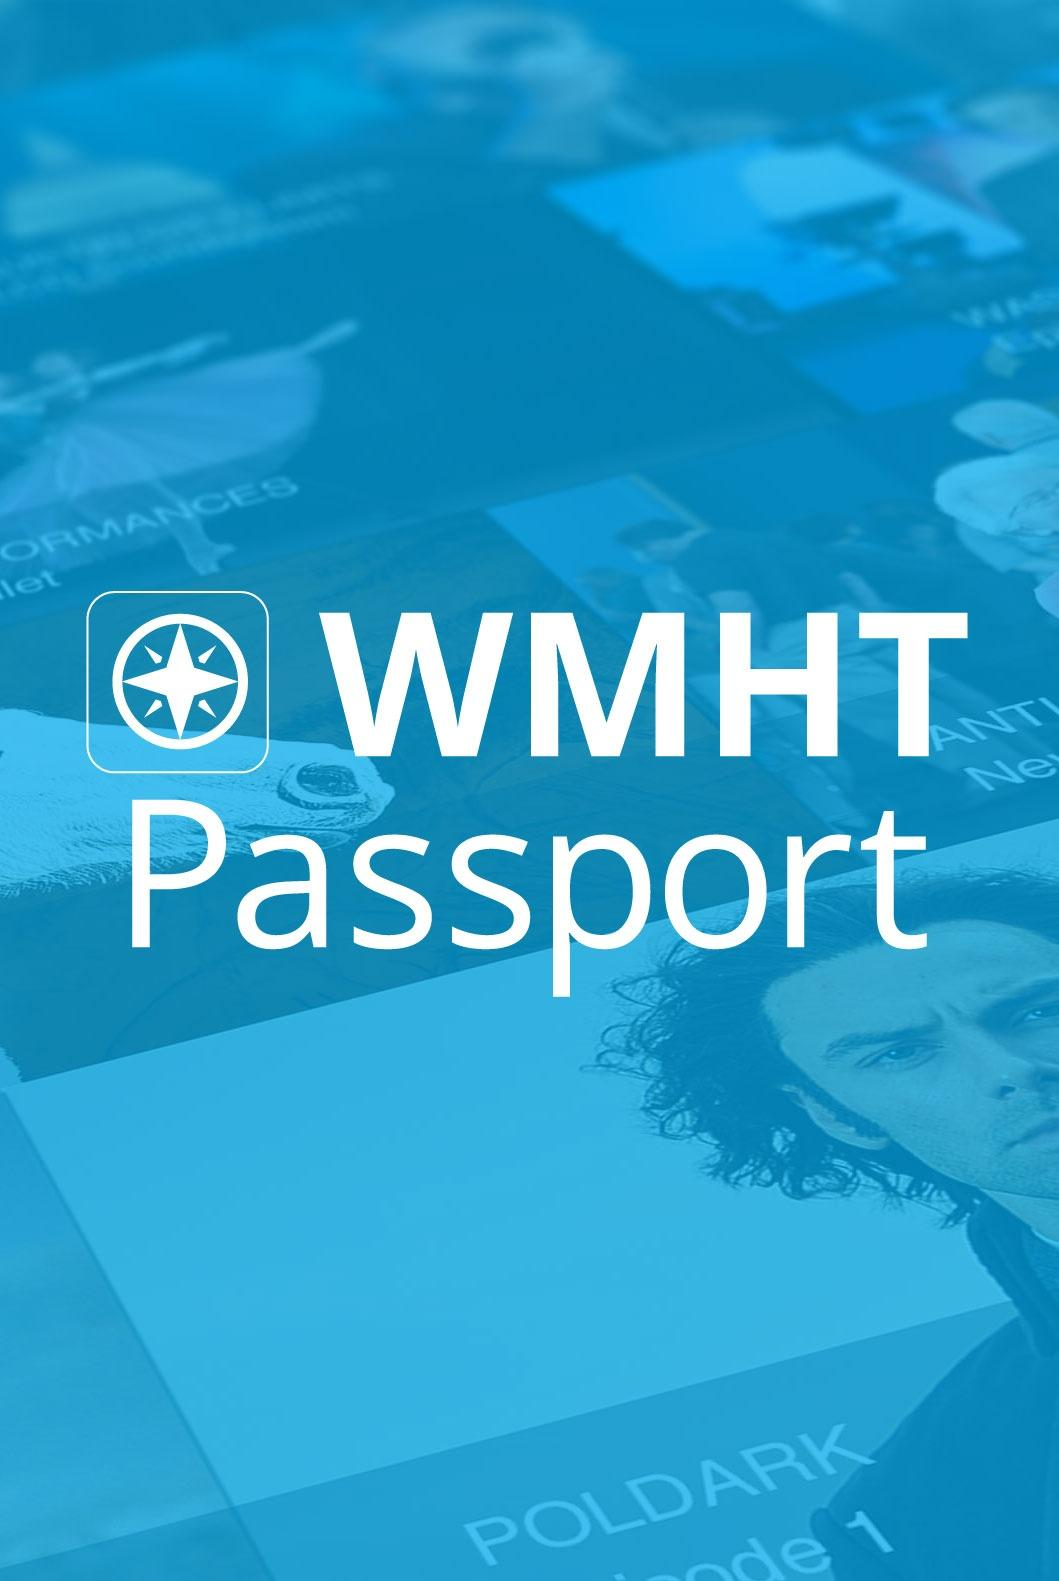 WMHT Passport Image with Logo